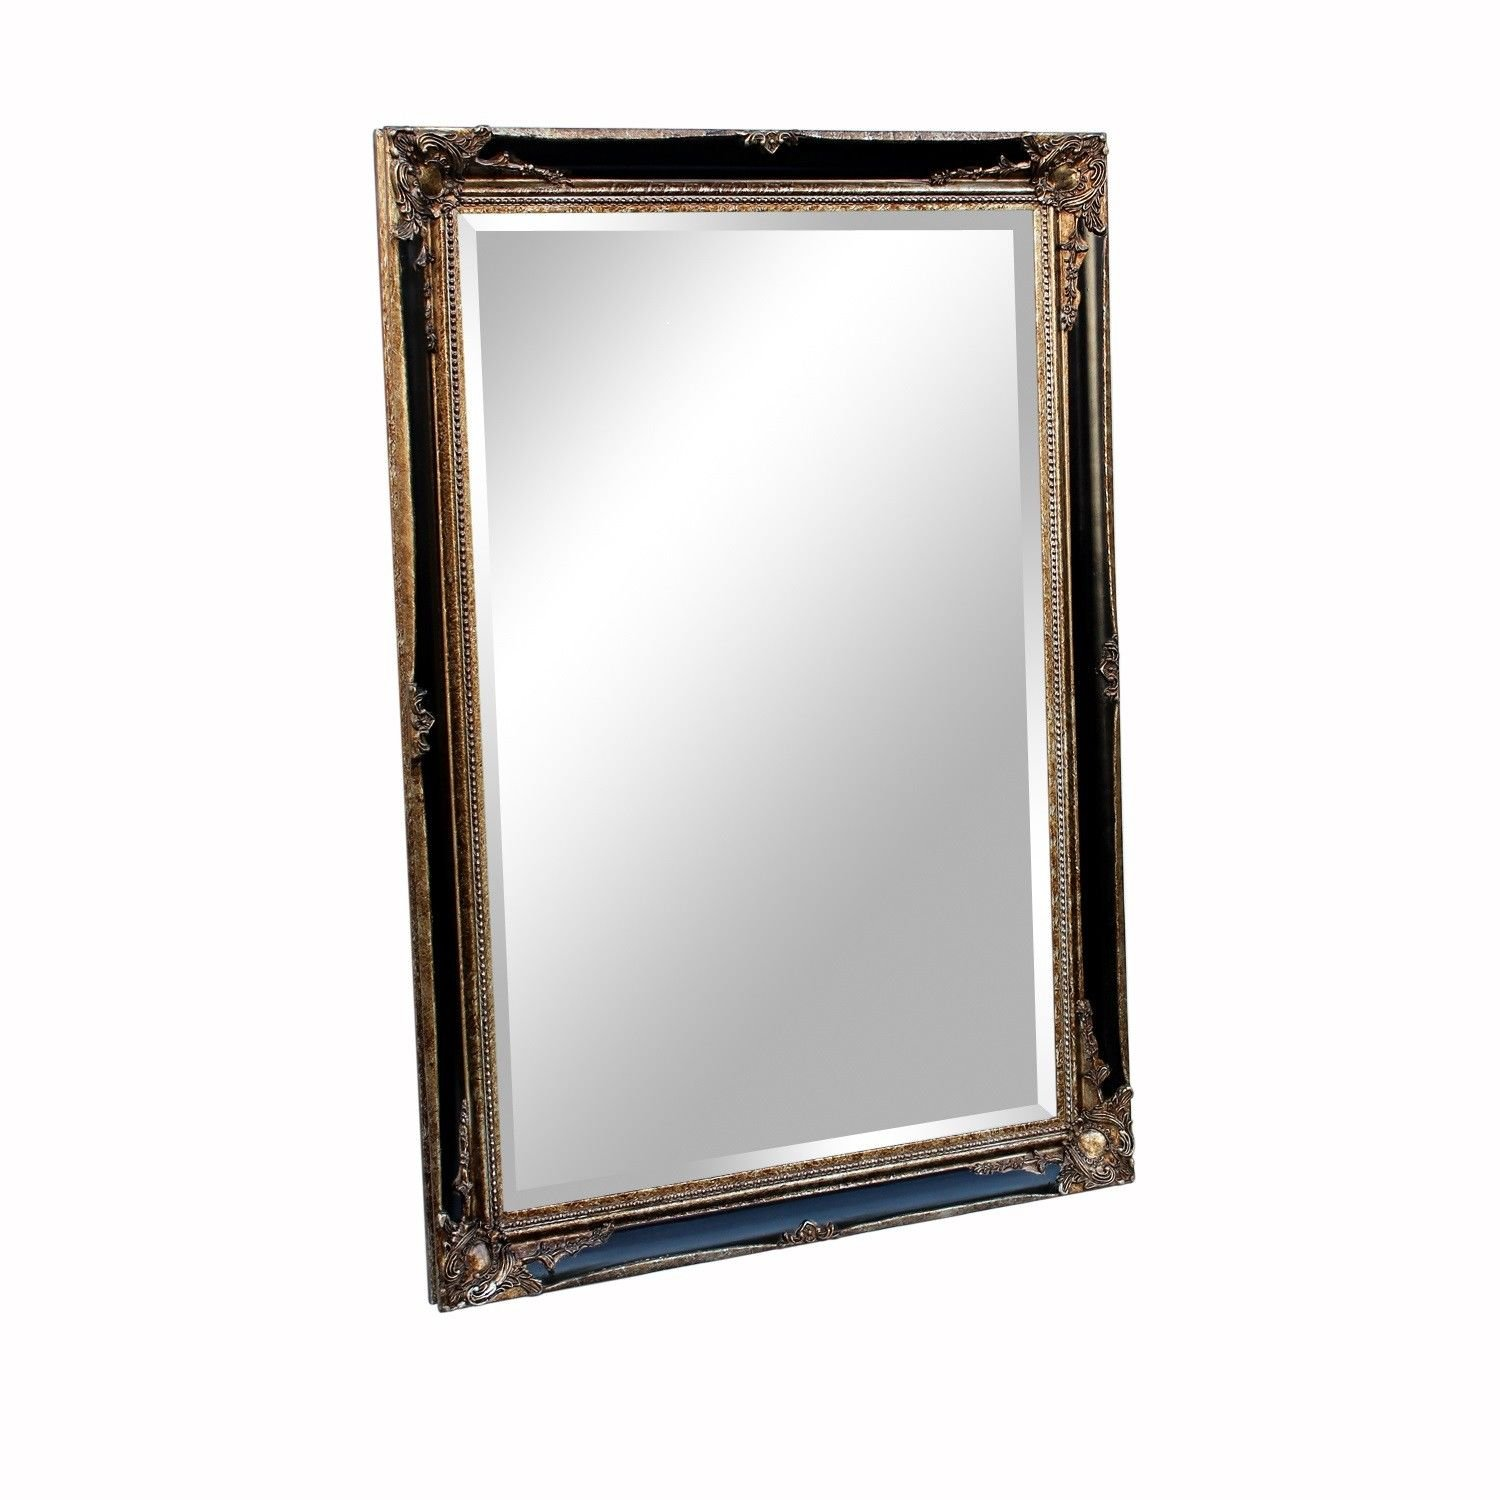 Home Supplies X LARGE Antique Silver Shabby Chic Ornate Decorative Wall Mirror China